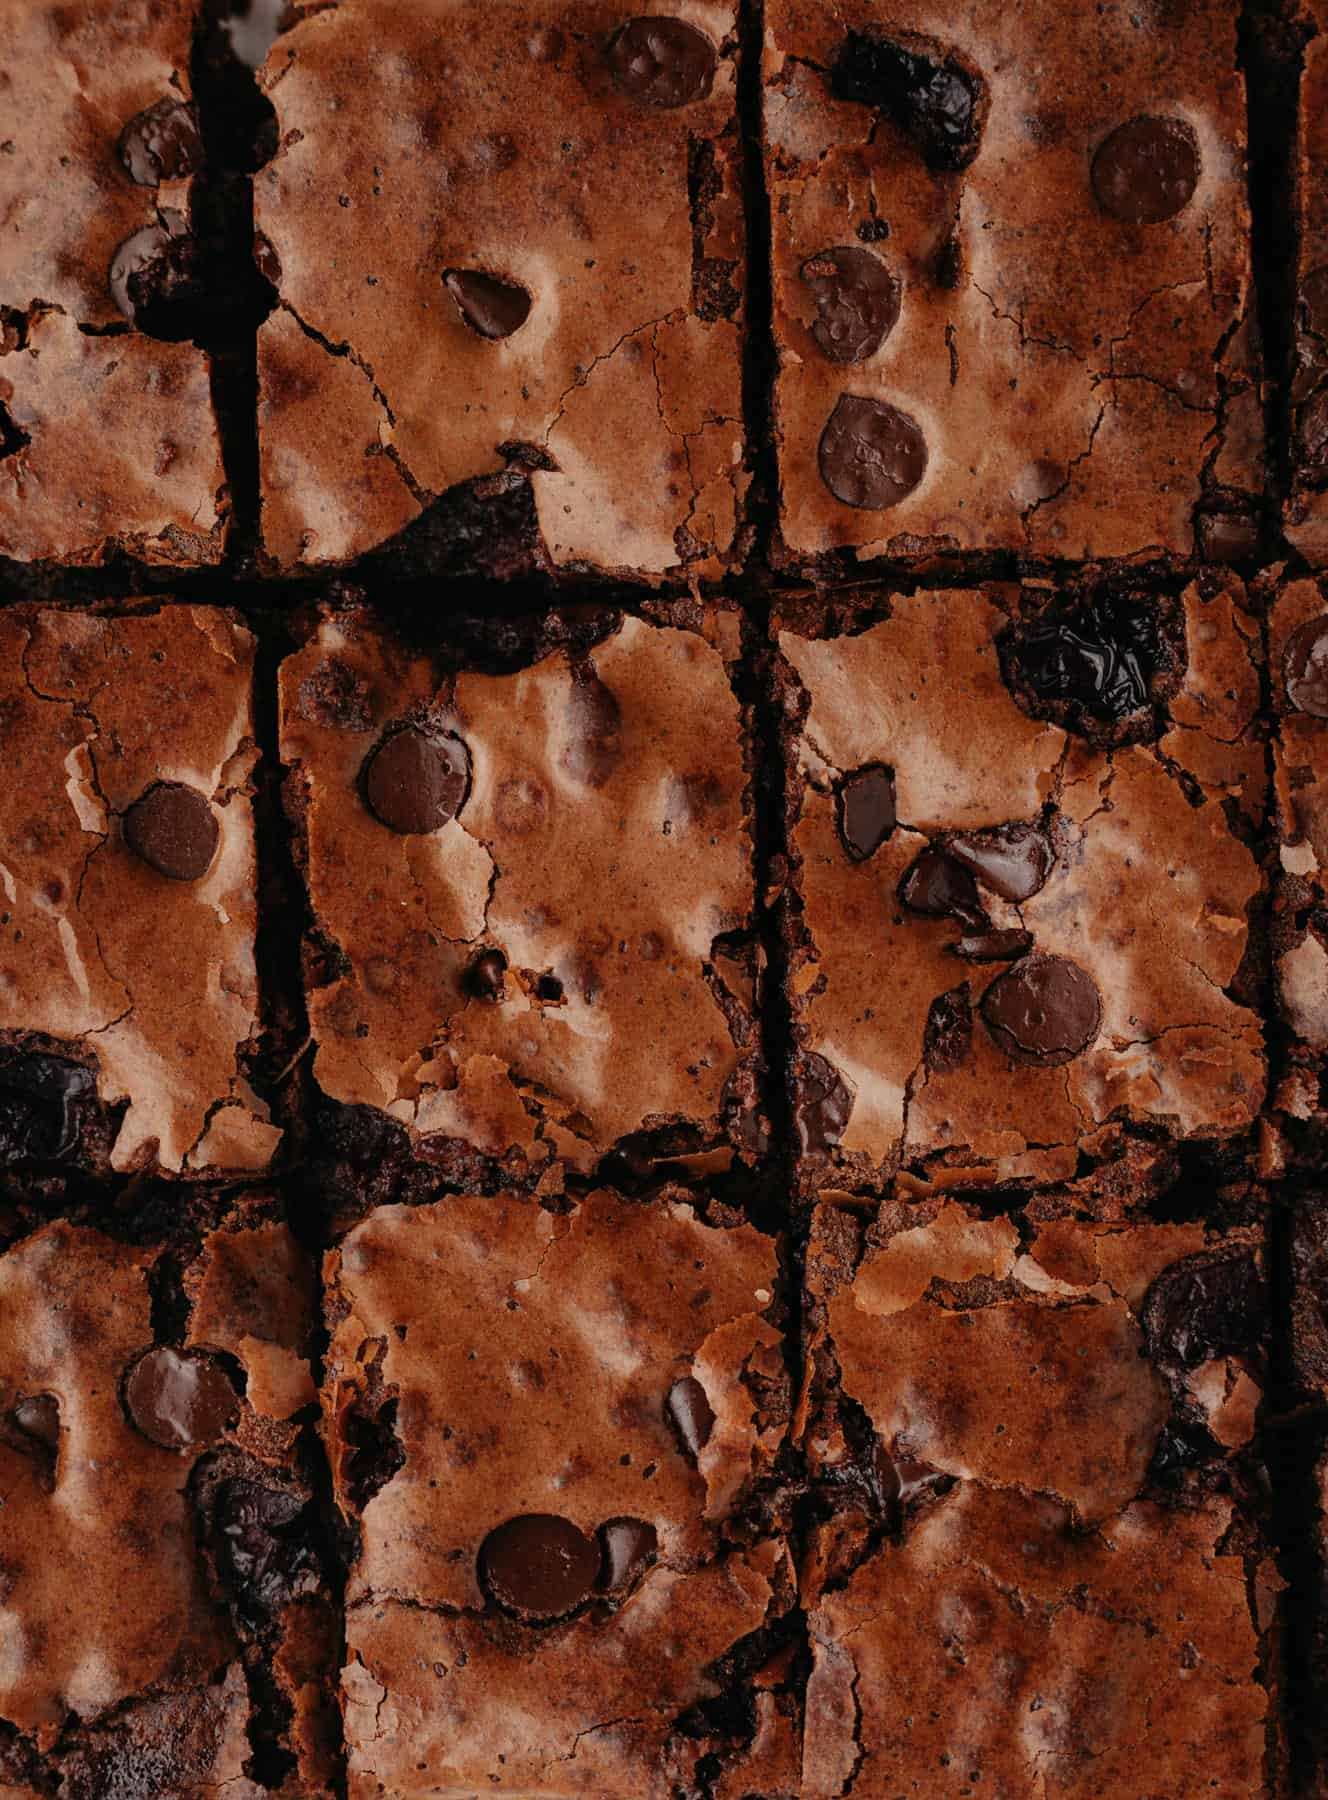 A close up of brownies that have been slied.